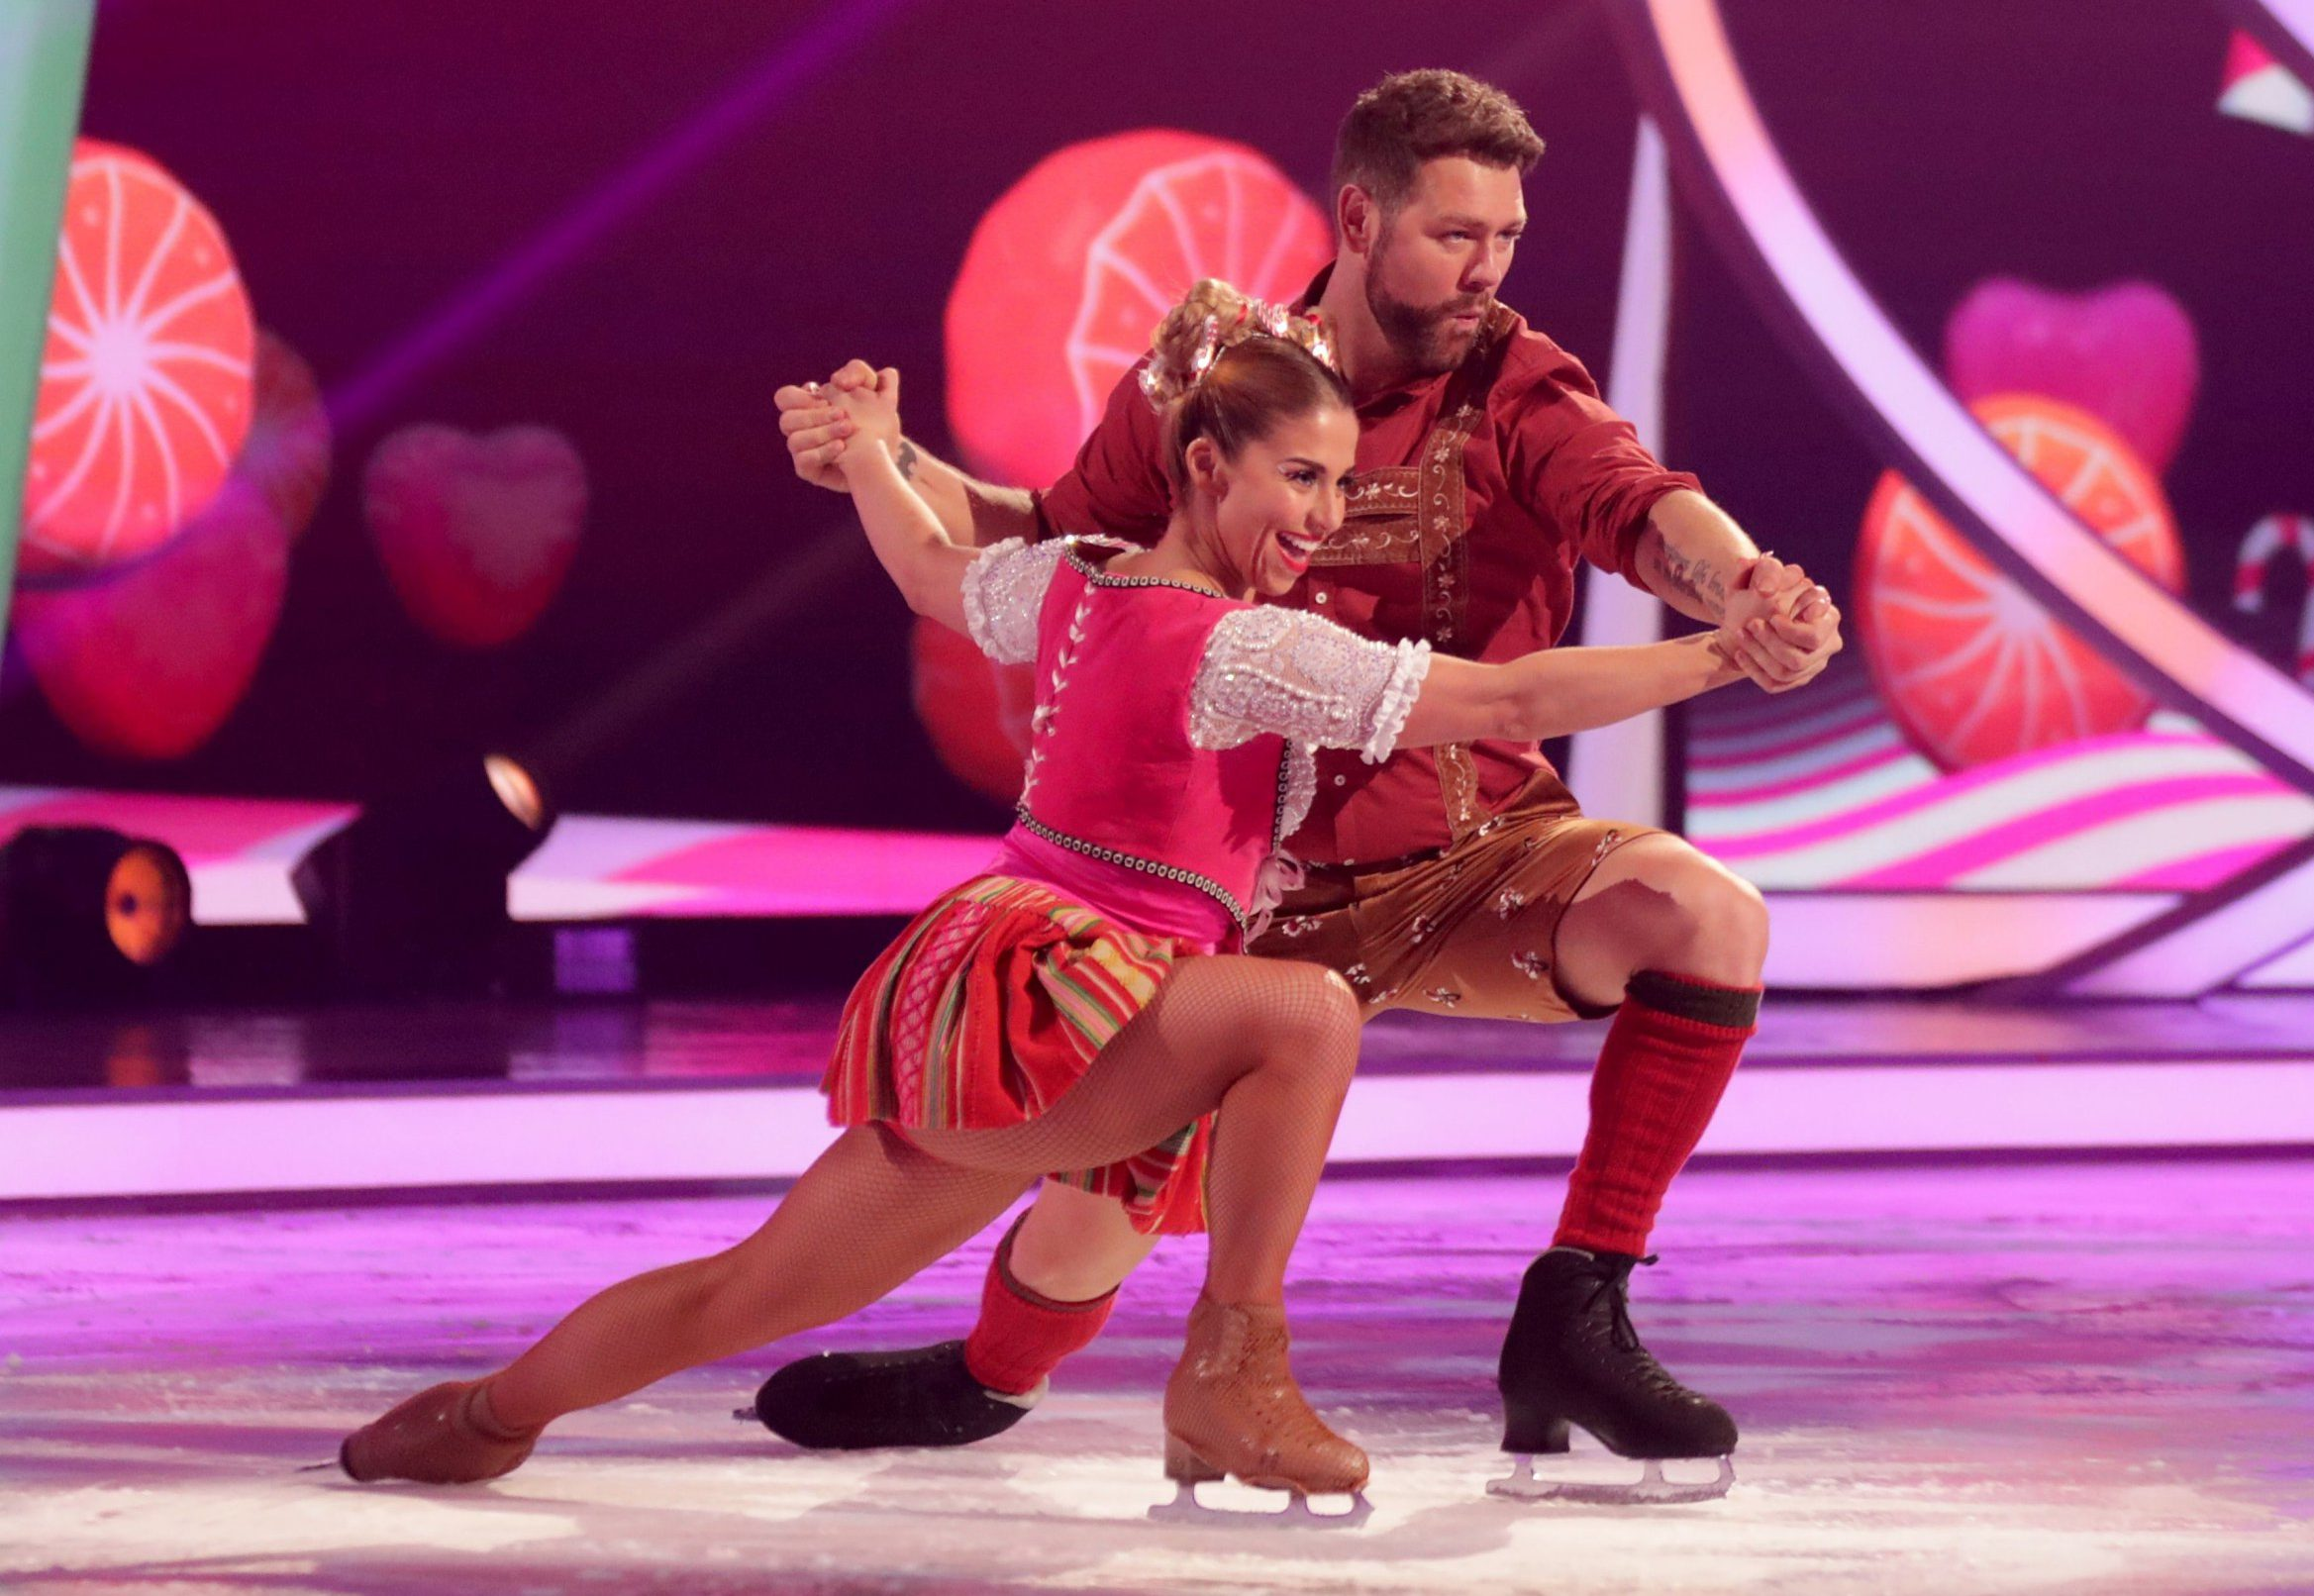 Brian McFadden forced to 'wing it' on Dancing On Ice tonight after injury left him unable to rehearse